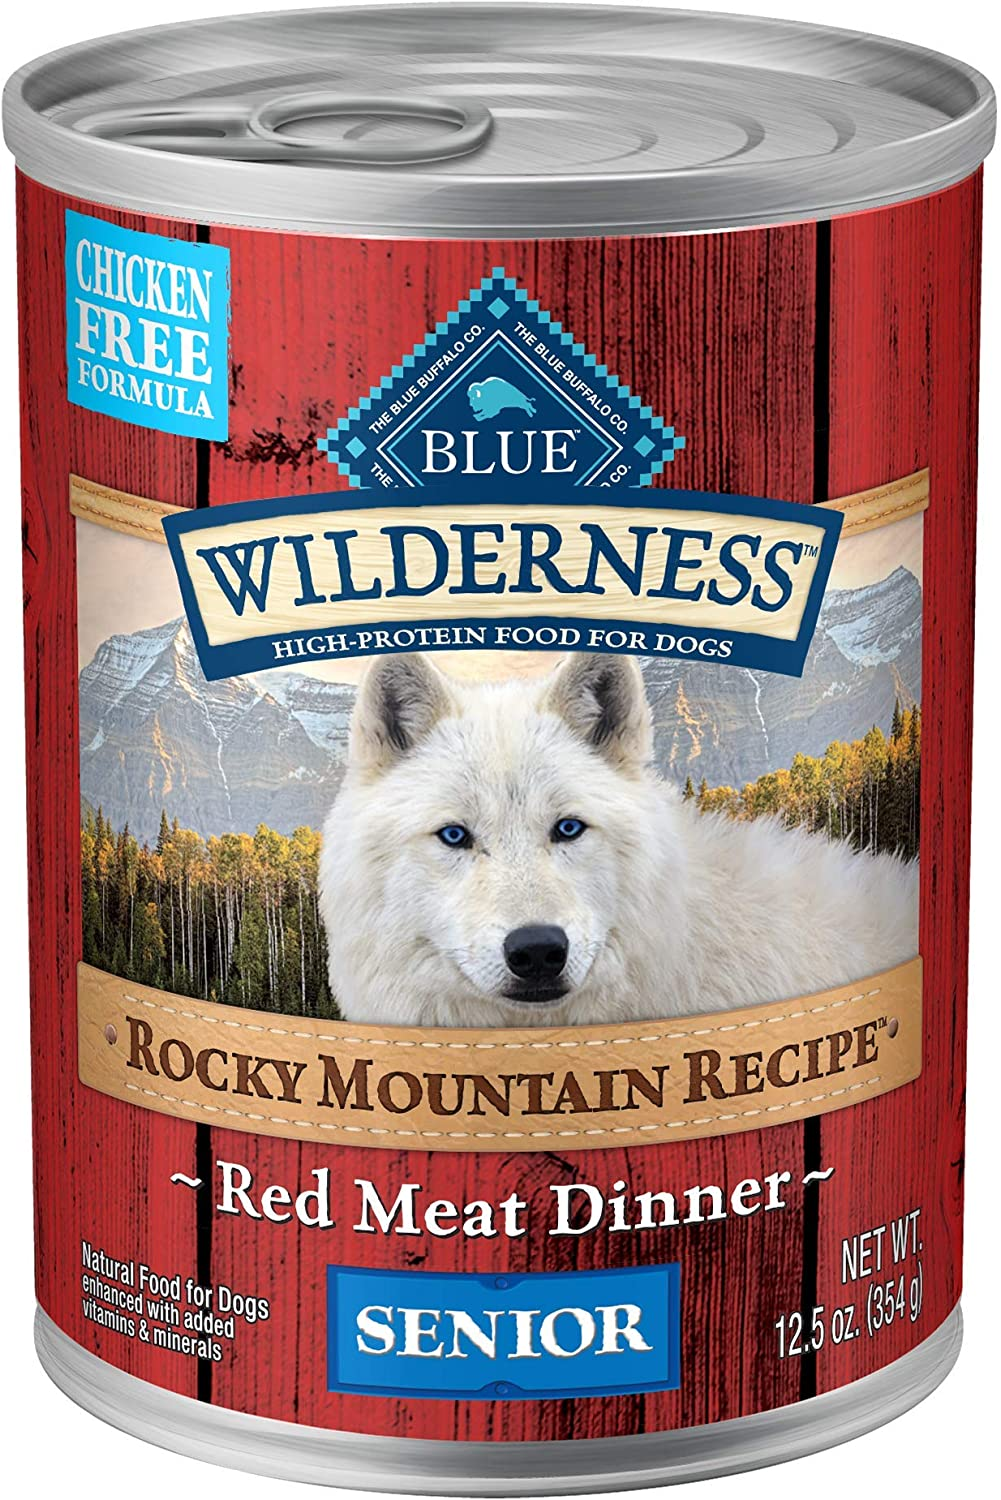 Blue Buffalo Wilderness Rocky Mountain Recipe High Protein Grain Free, Natural Senior Wet Dog Food, Red Meat 12.5-oz cans (Pack of 12)